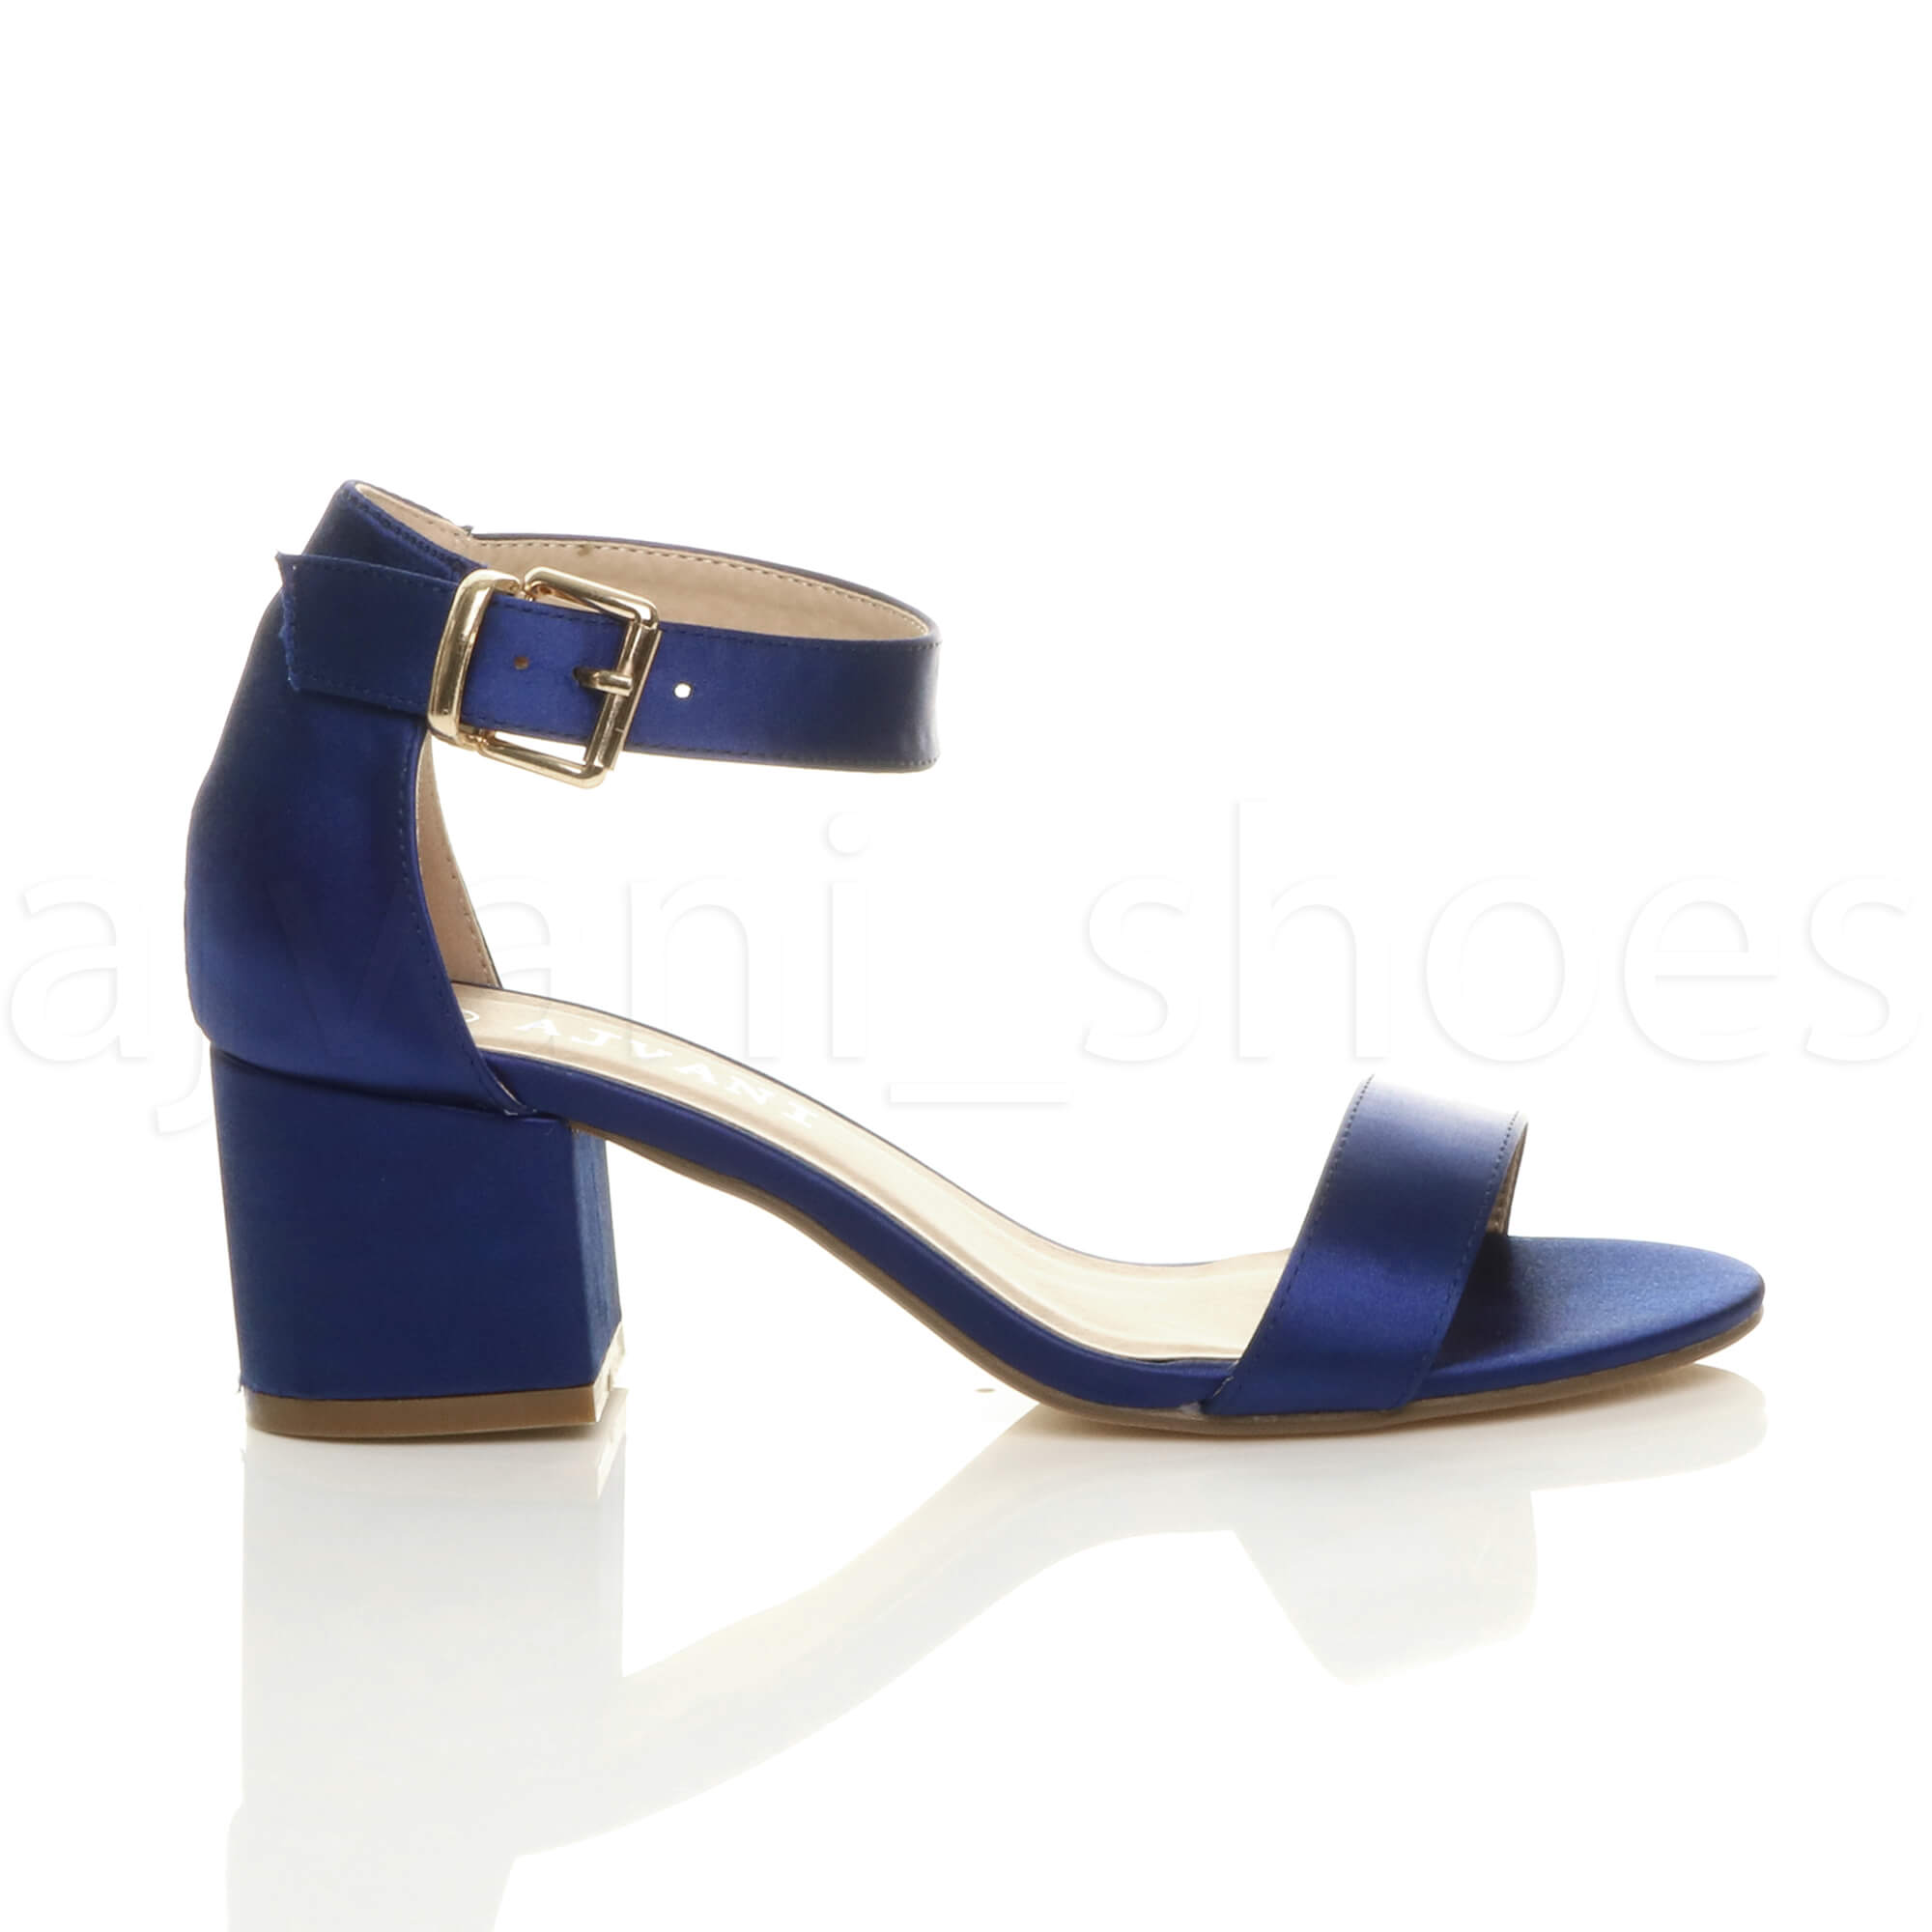 WOMENS-LADIES-LOW-MID-BLOCK-HEEL-ANKLE-STRAP-BUCKLE-PARTY-STRAPPY-SANDALS-SIZE thumbnail 120